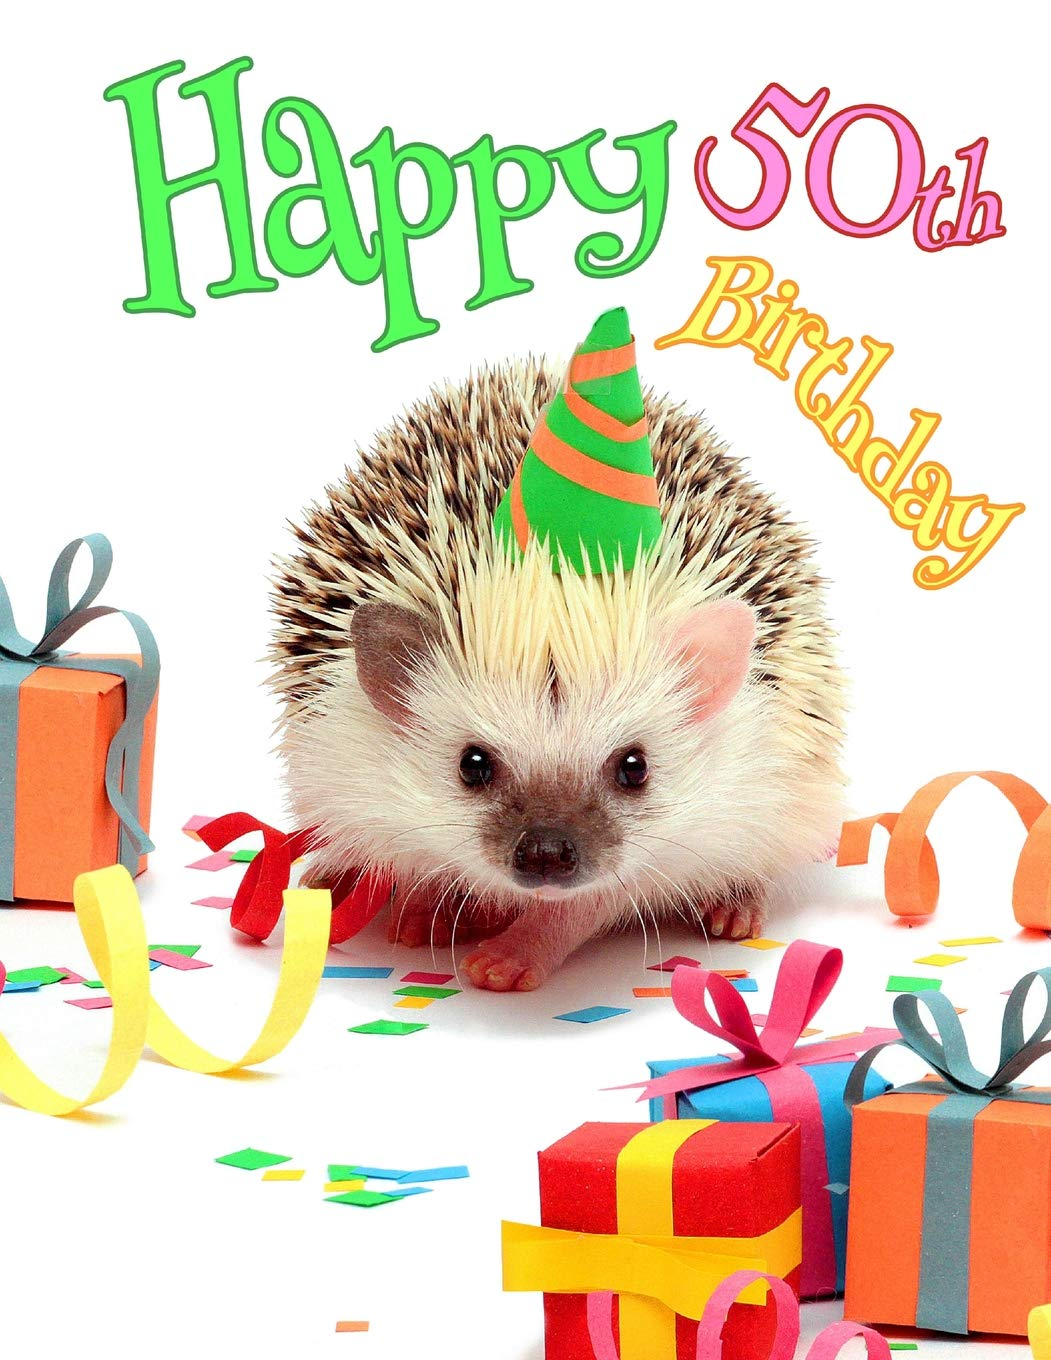 Happy 50th Birthday Cute Hedgehog Party Themed Journal